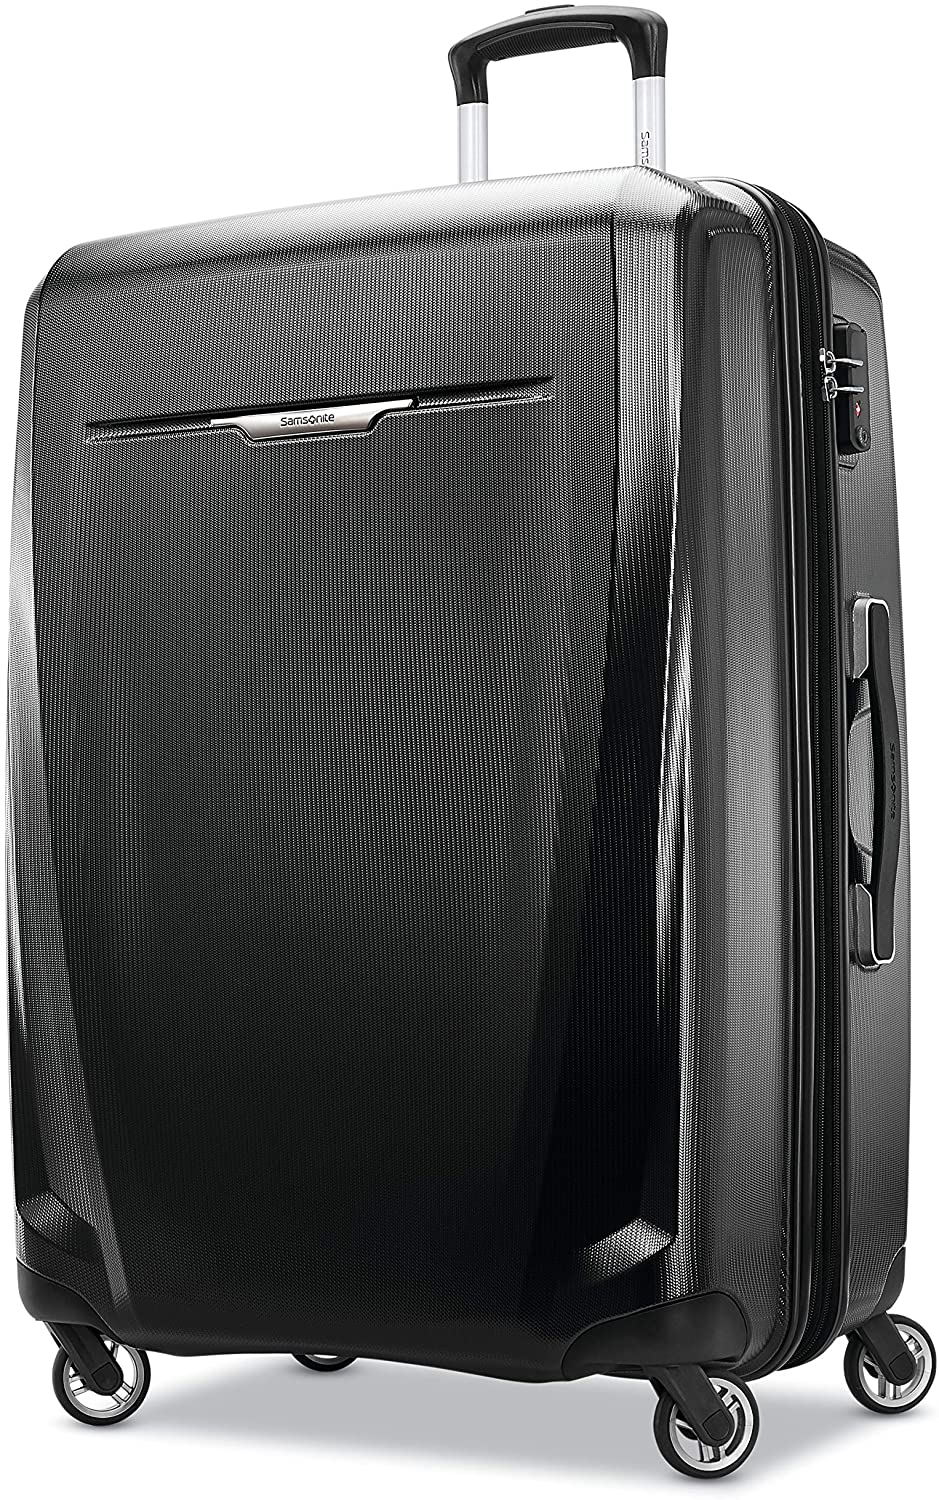 Samsonite Winfield 3 DLX Hardside Luggage with Spinner Wheels